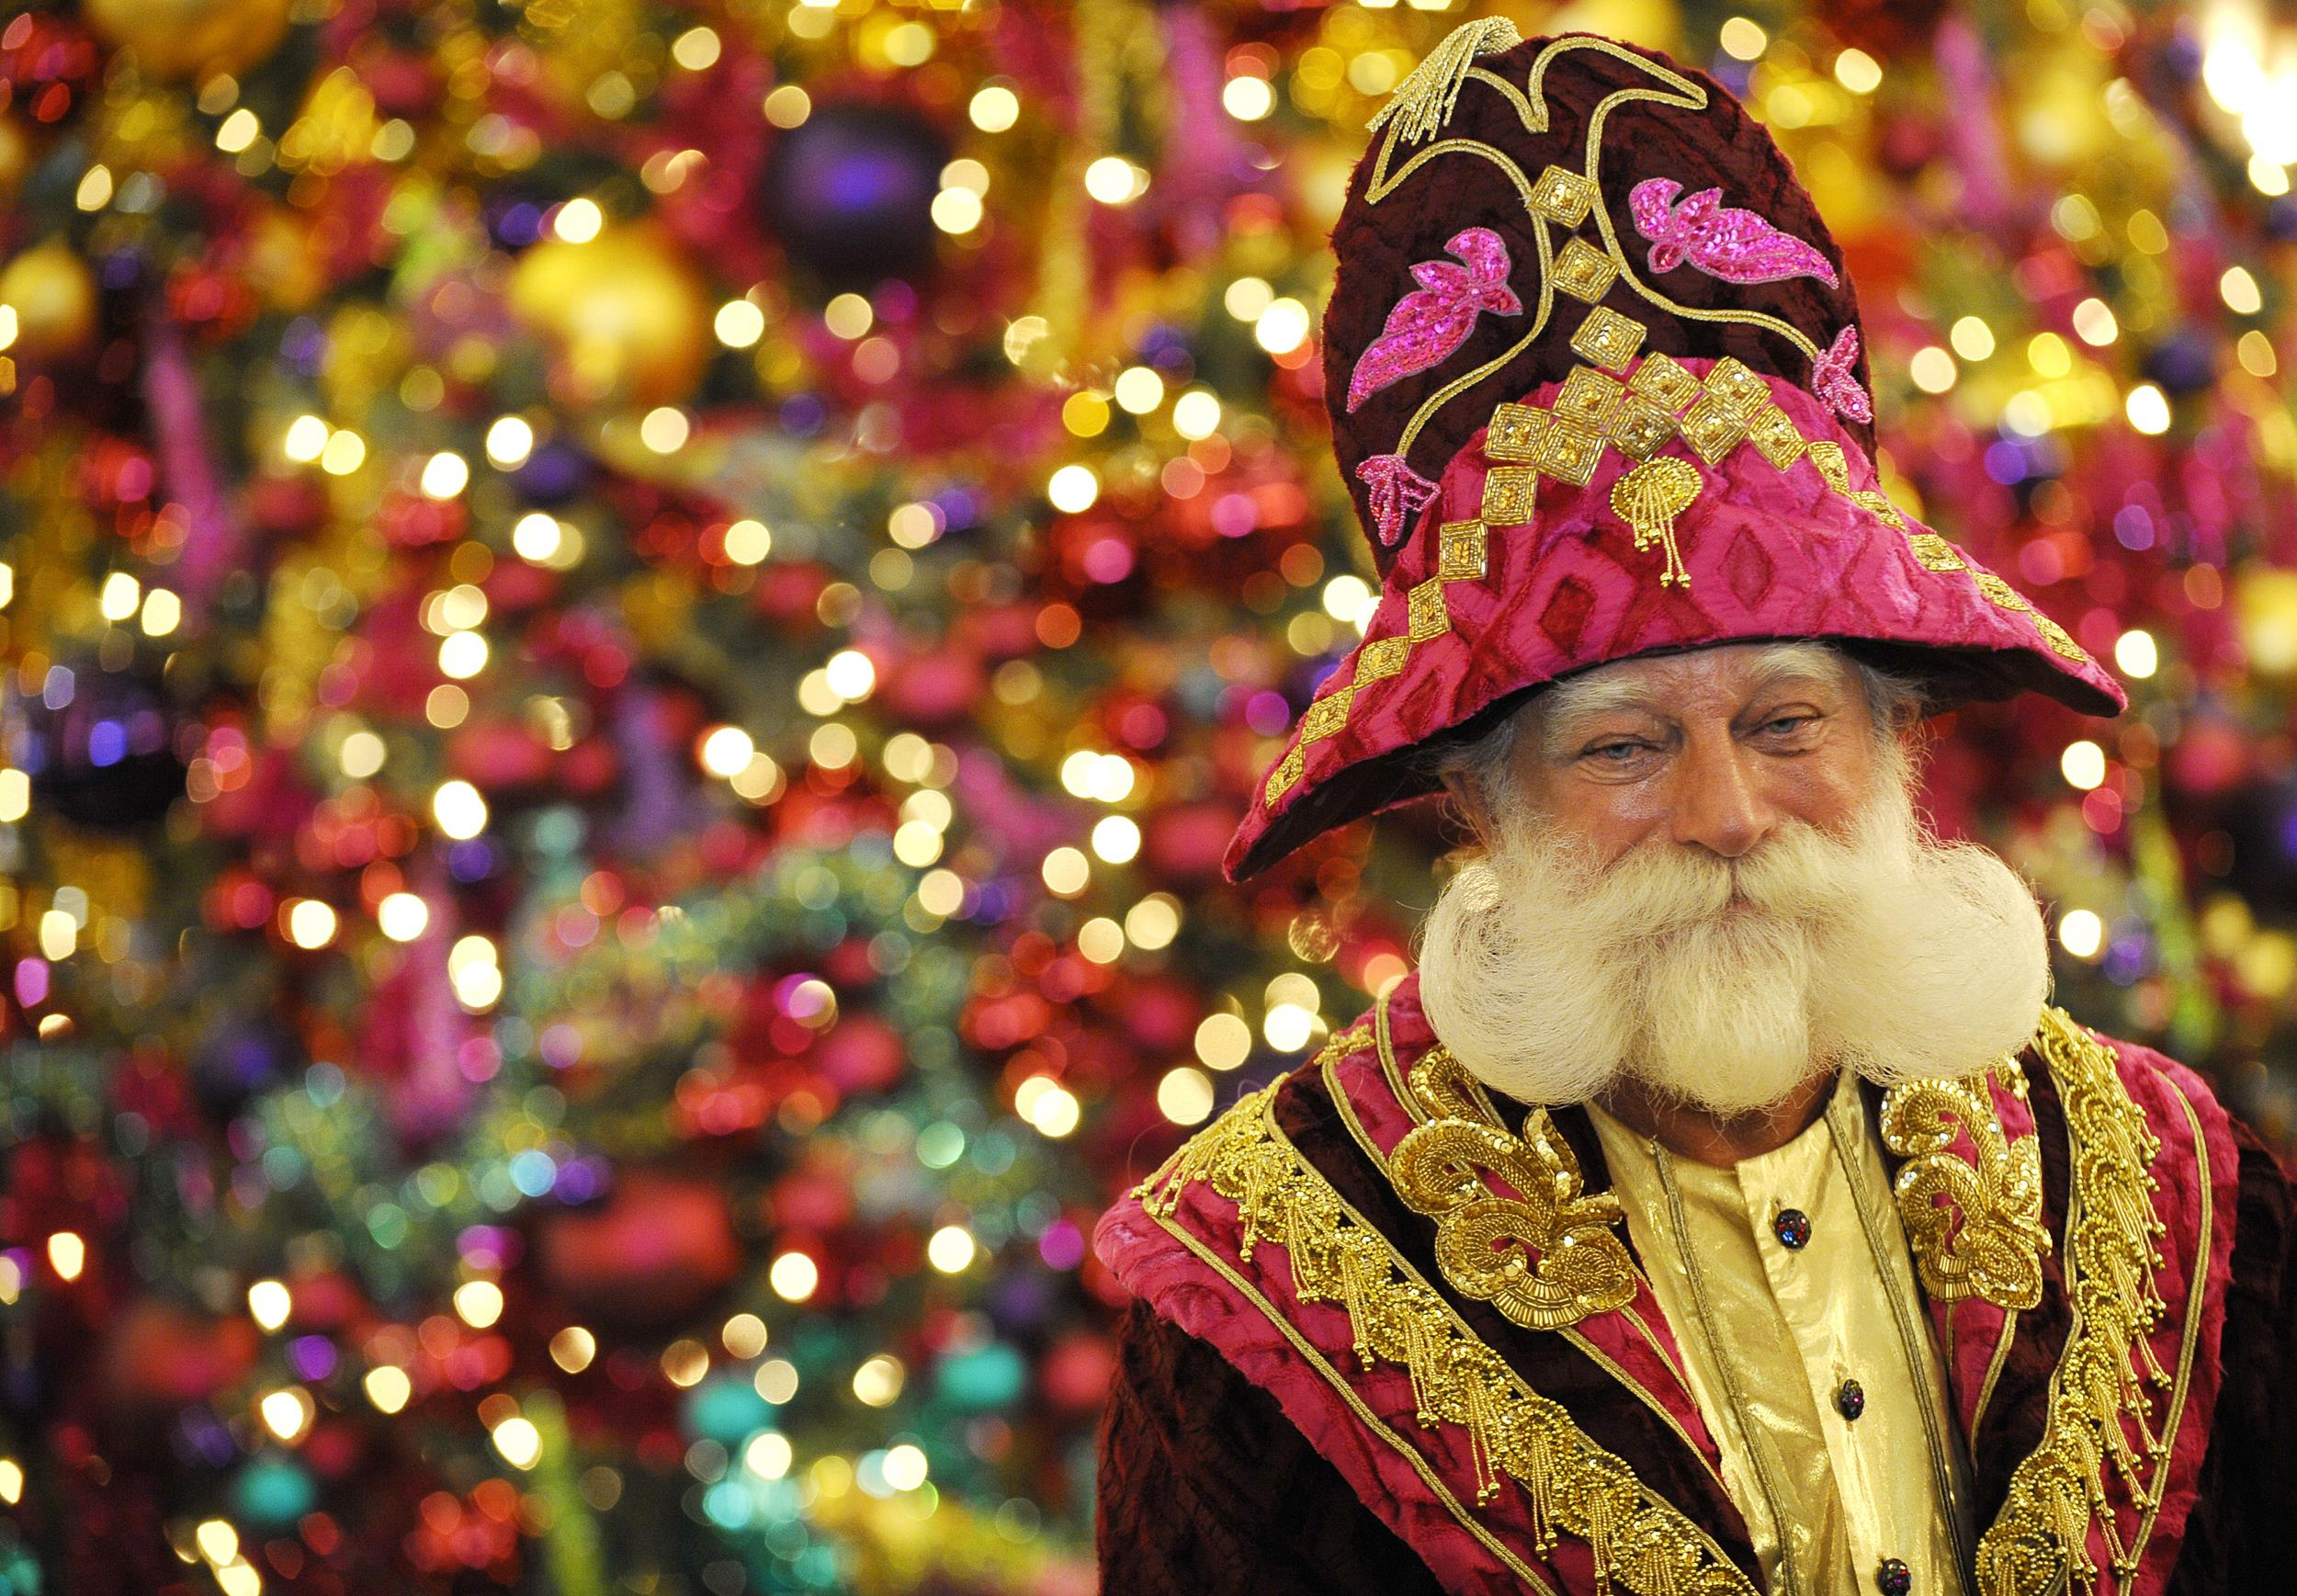 Well Known Santa Claus Peter Georgi Is Laid Off By Berlin Store